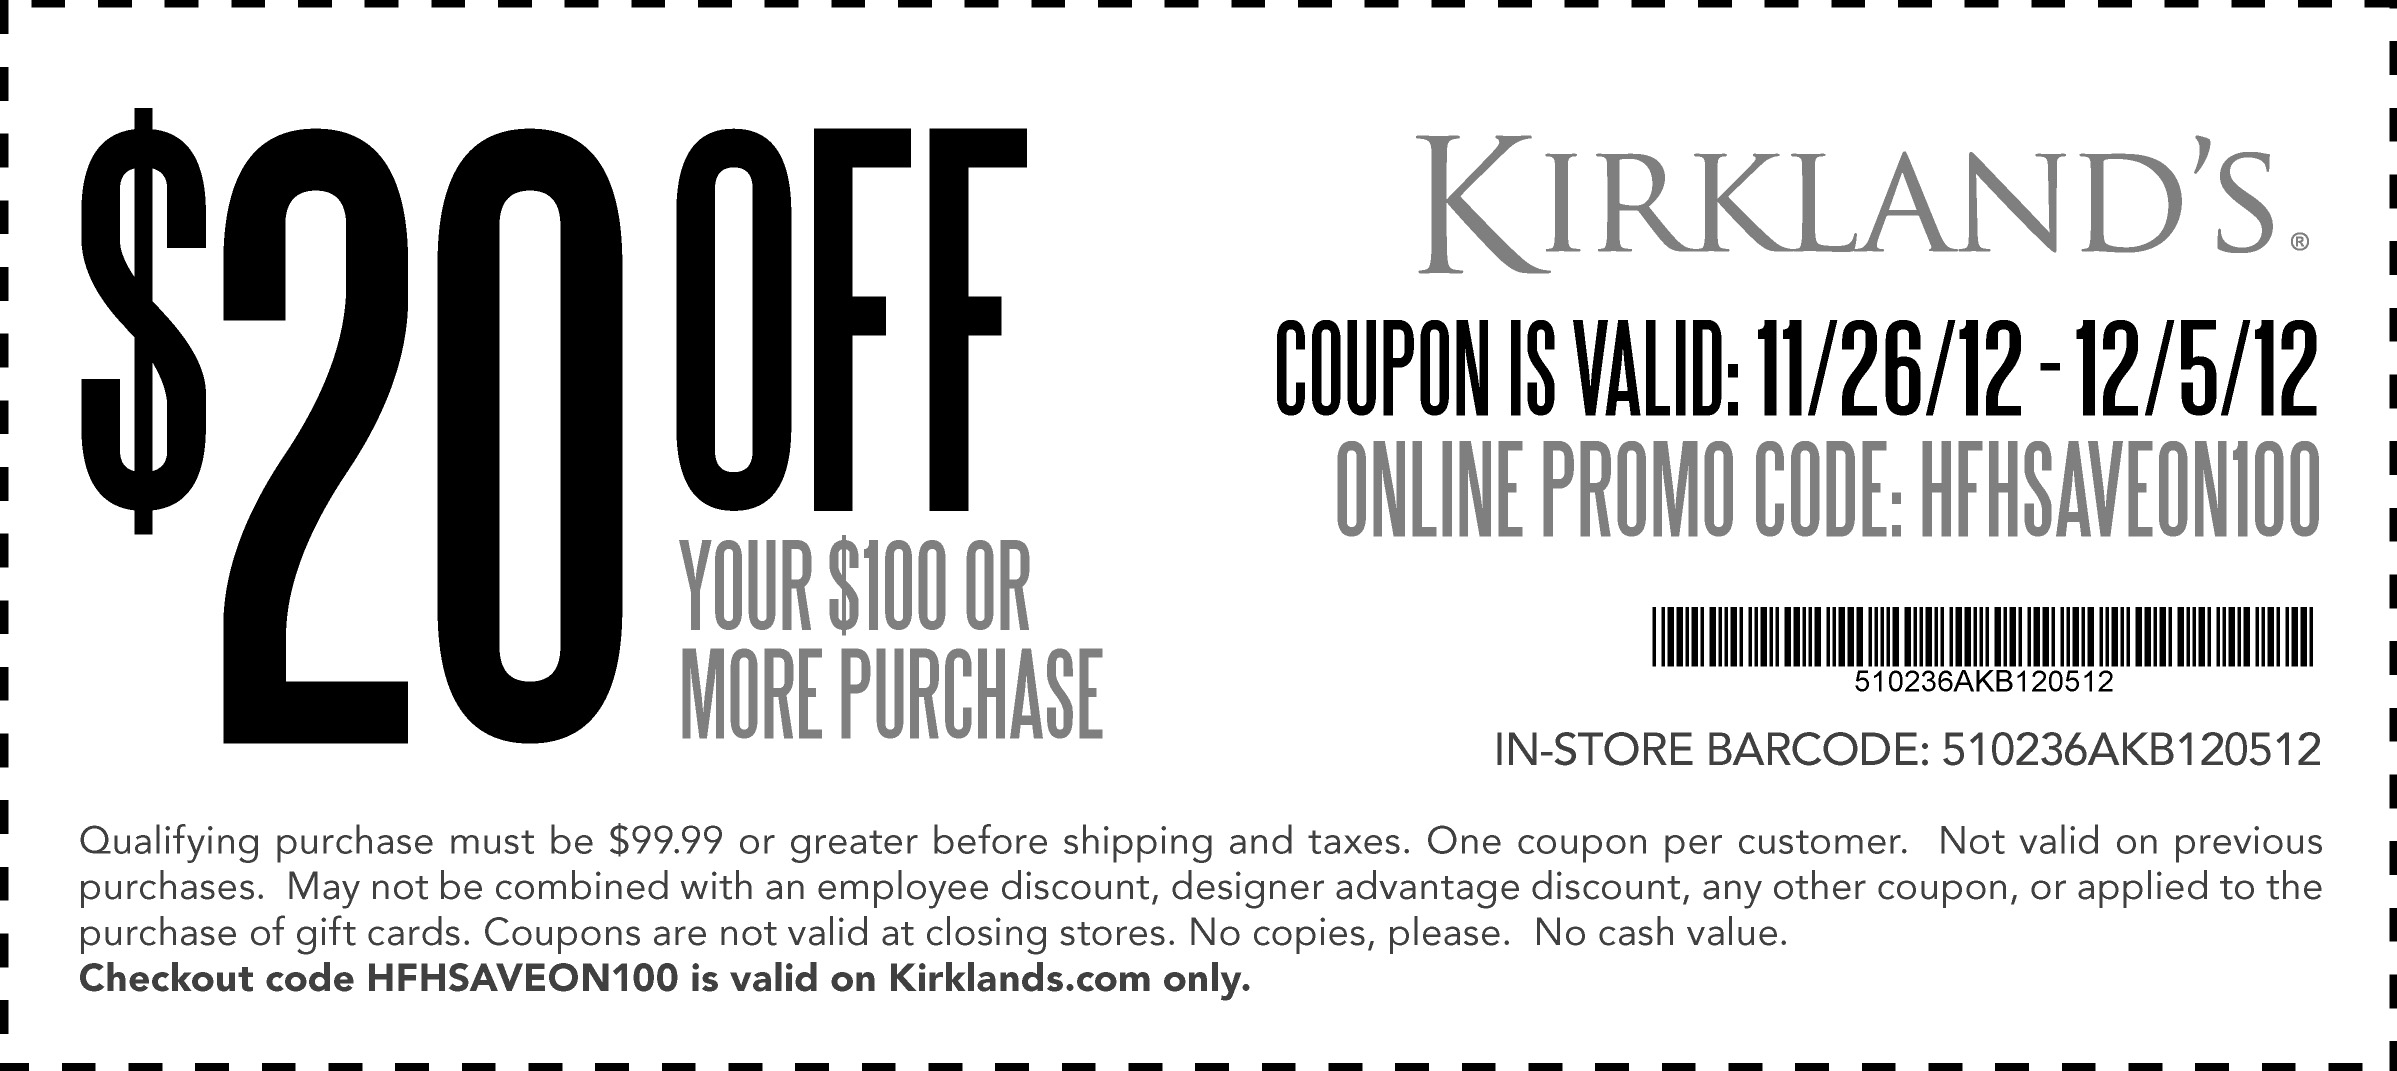 Kirkland S Home For The Holidays Coupon Free Printable Coupons Promo Codes Online Printable Coupons